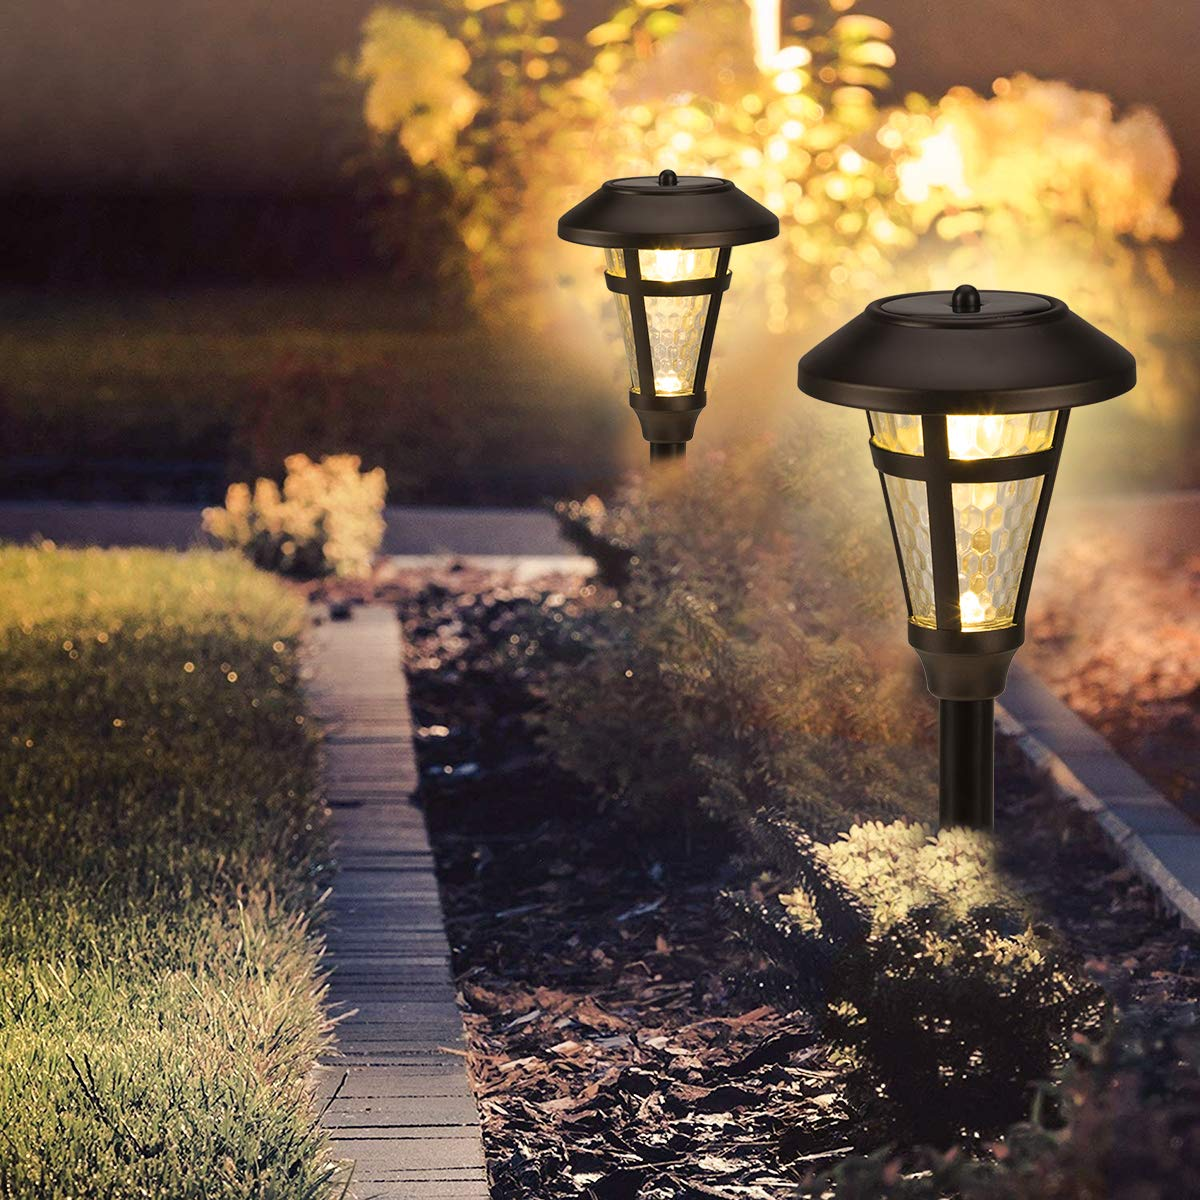 GIGALUMI 6 Pcs Solar Lights Outdoor, Bronze Finshed, Glass Lamp, Waterproof Led Solar Lights for Lawn、Patio、Yard、Garden、Pathway、Walkway and Driveway.